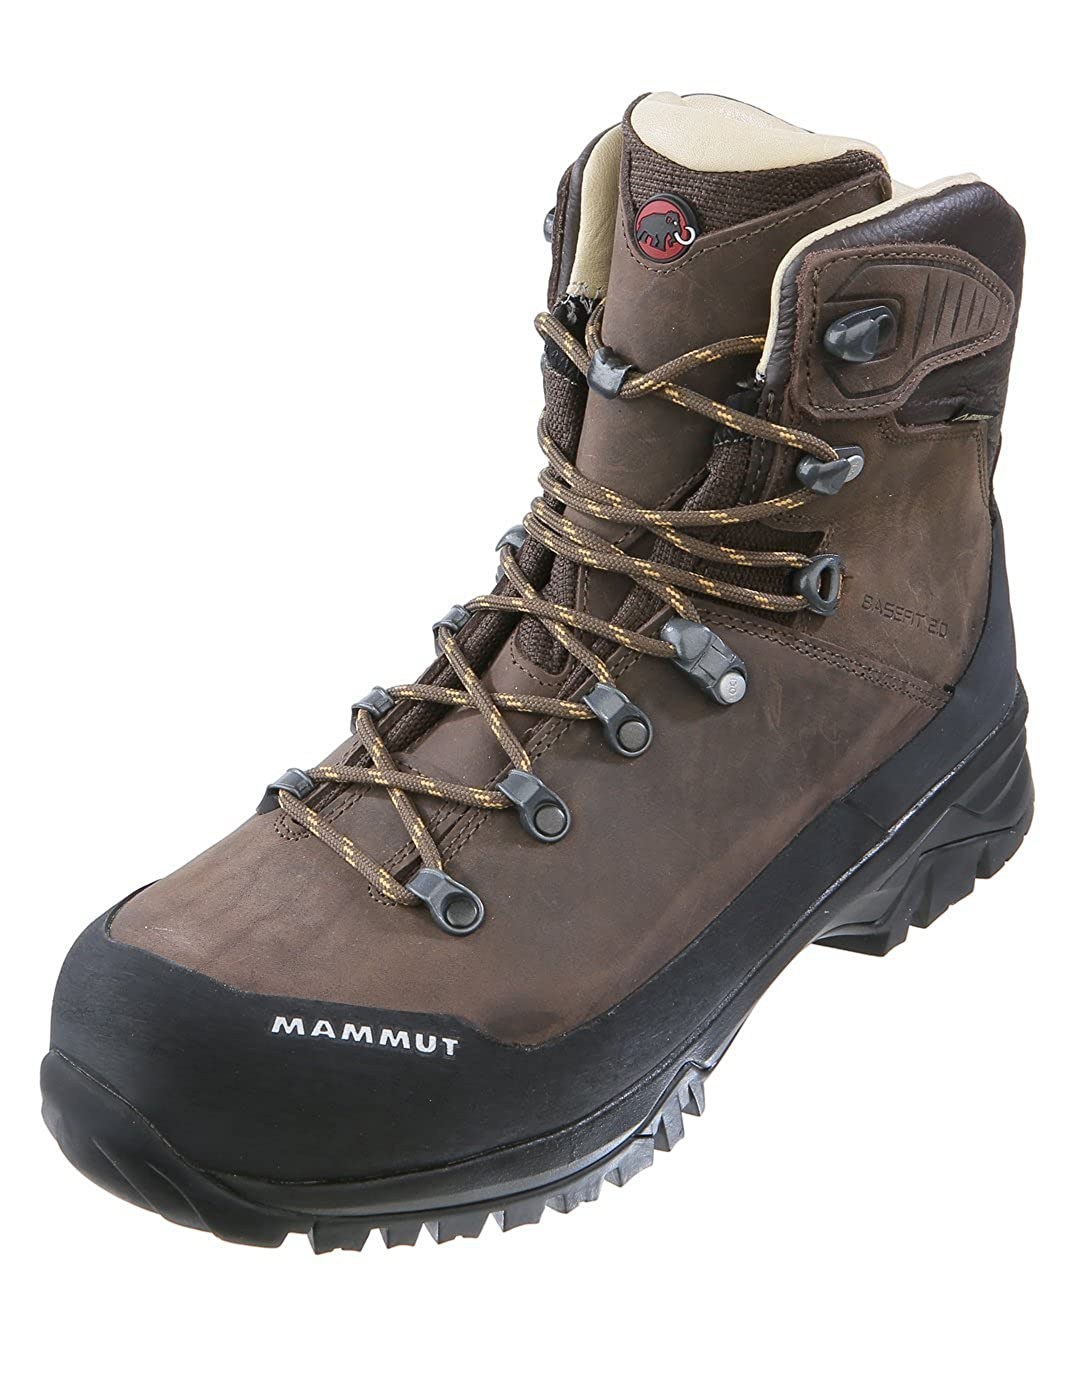 Mammut Ridge Low GTX Shoe - Men's 3020-04740